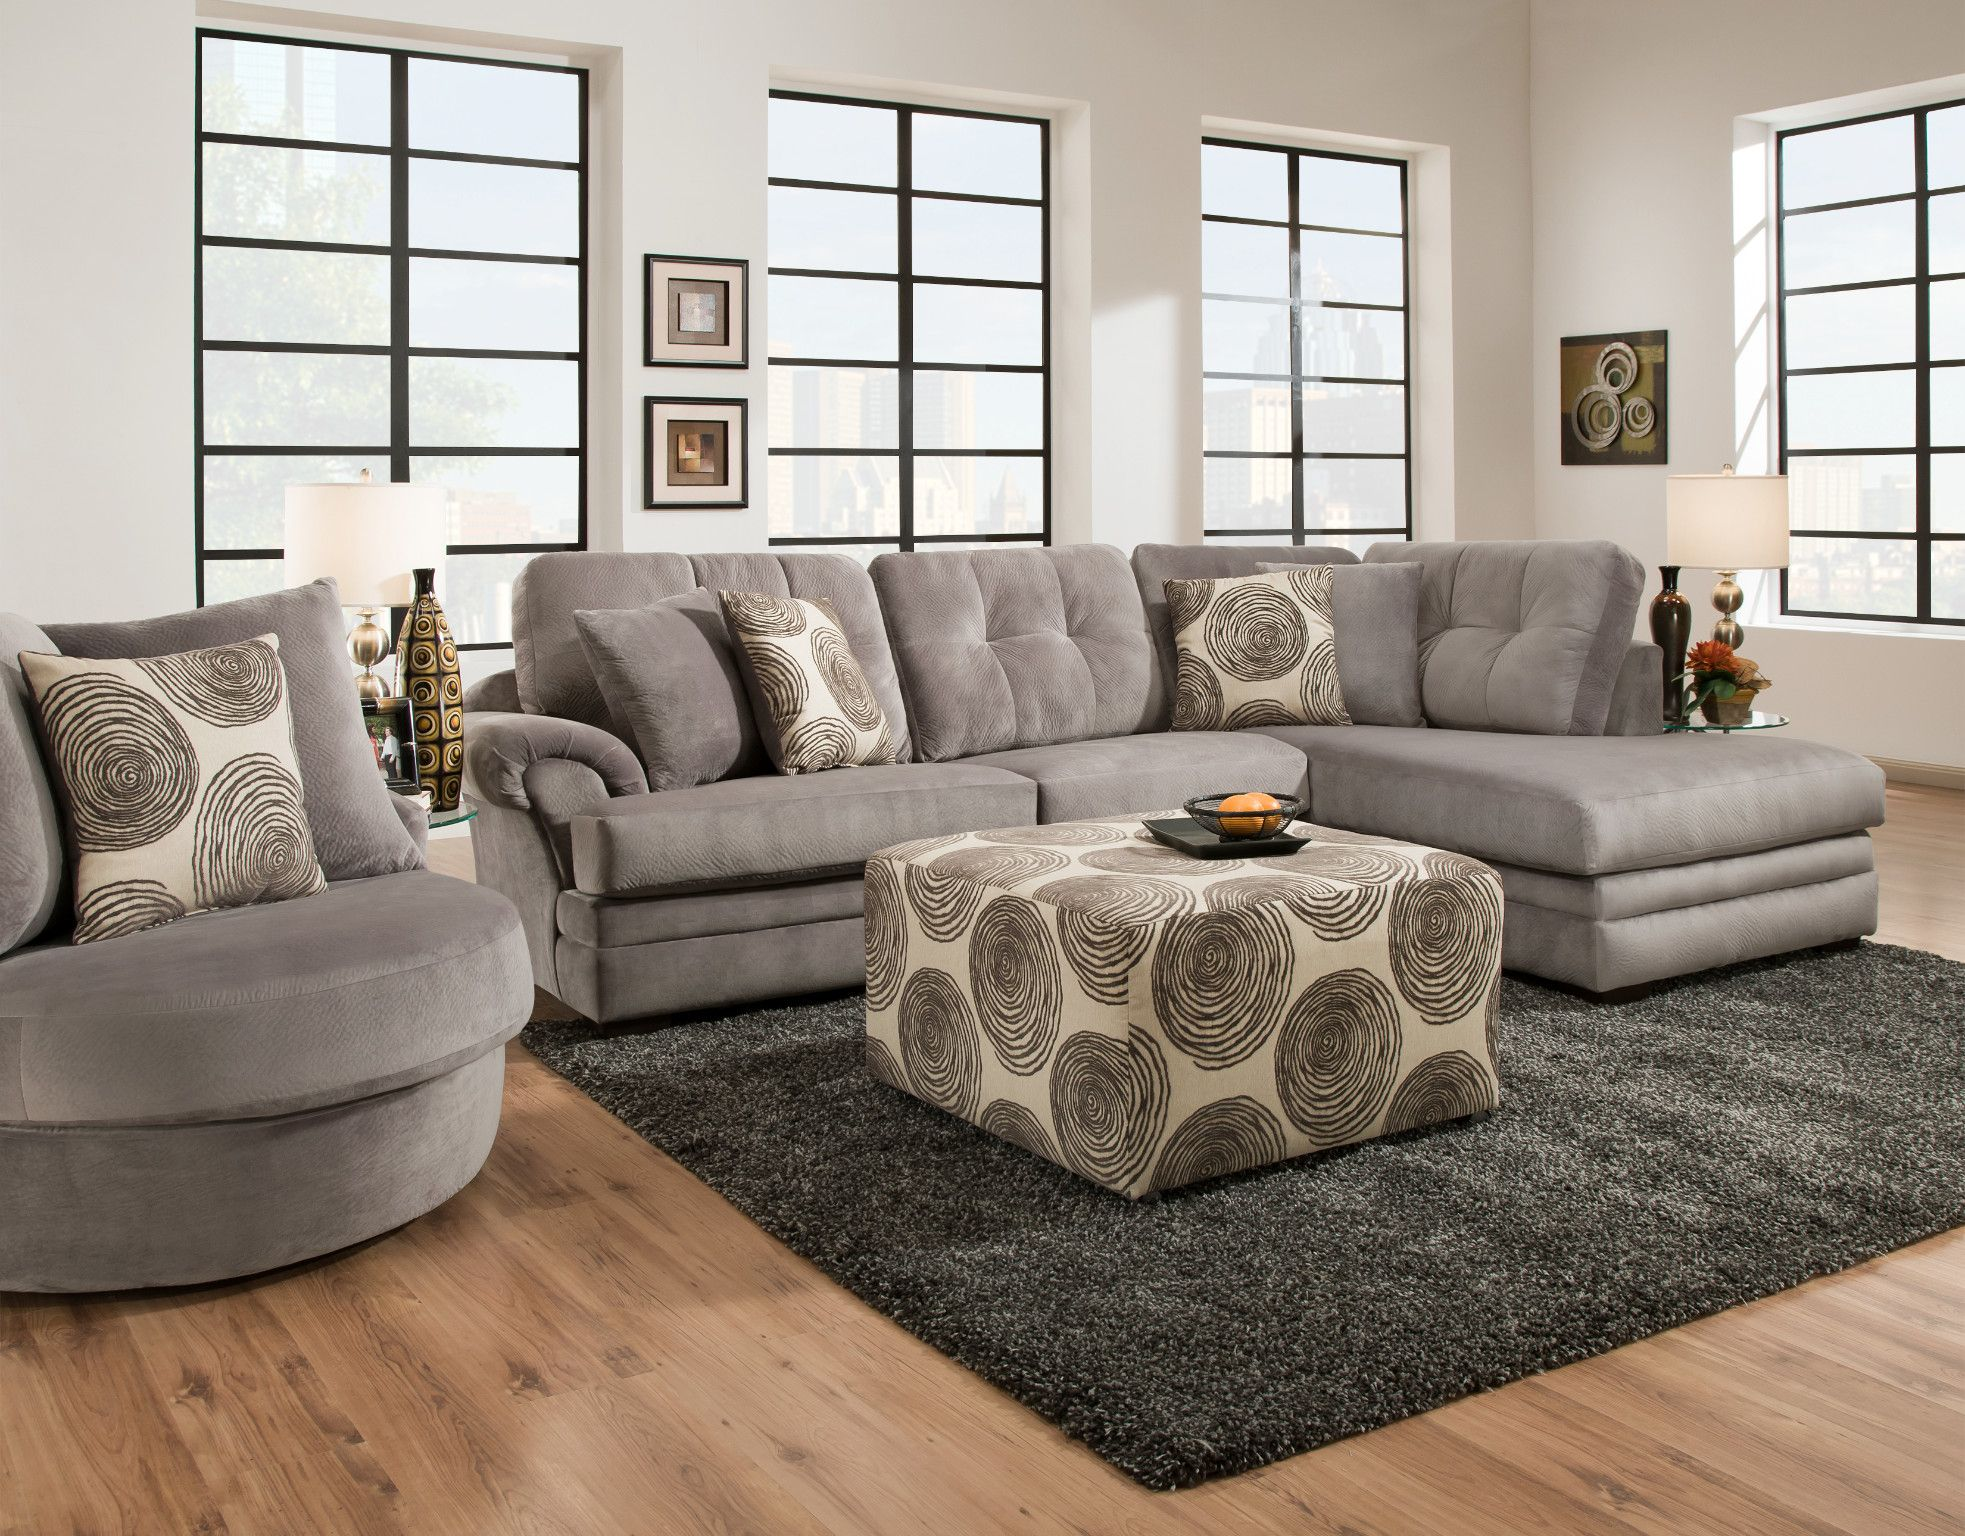 Knockout 2 Piece Sectional In Knockout Grey 16b3lf Left Facing Sofa L84 D Comfortable Living Room Furniture Living Room Sectional Sectional Sofa With Chaise